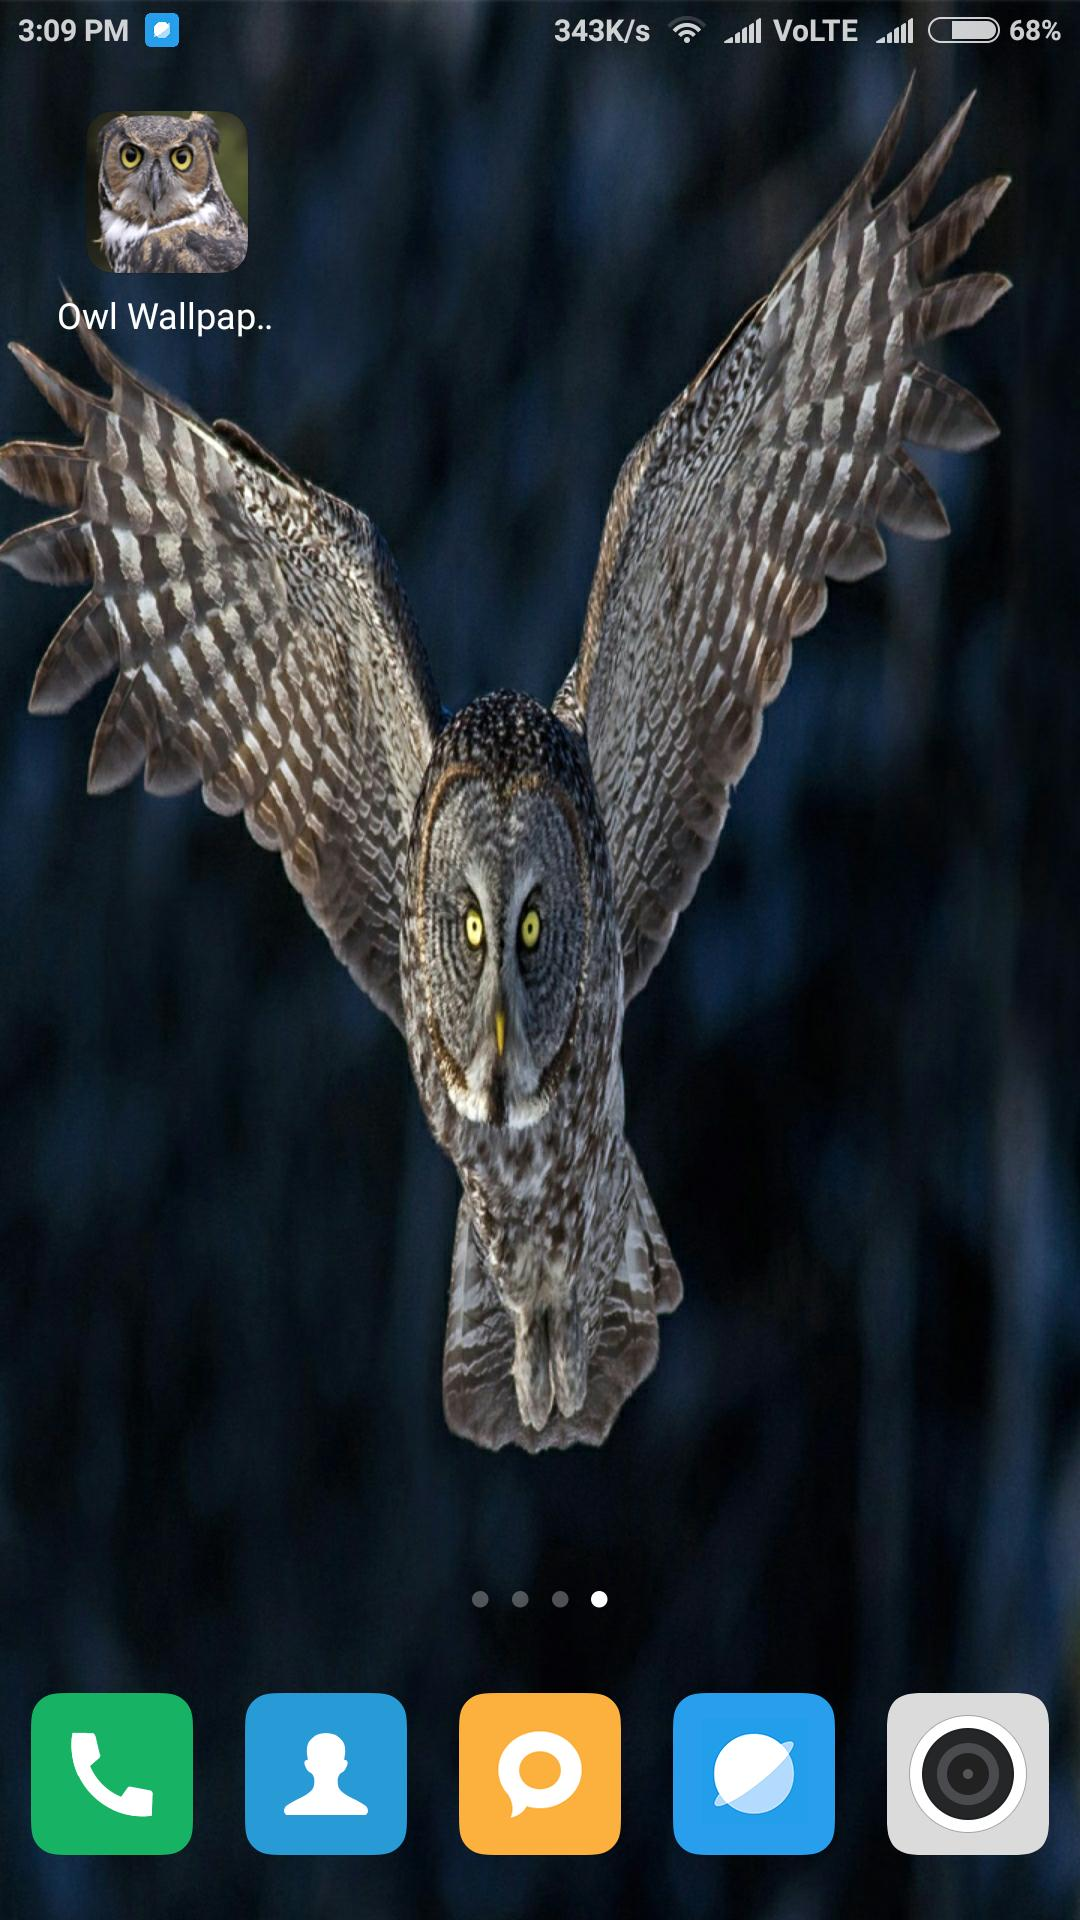 Hd Owl Wallpaper For Android Apk Download